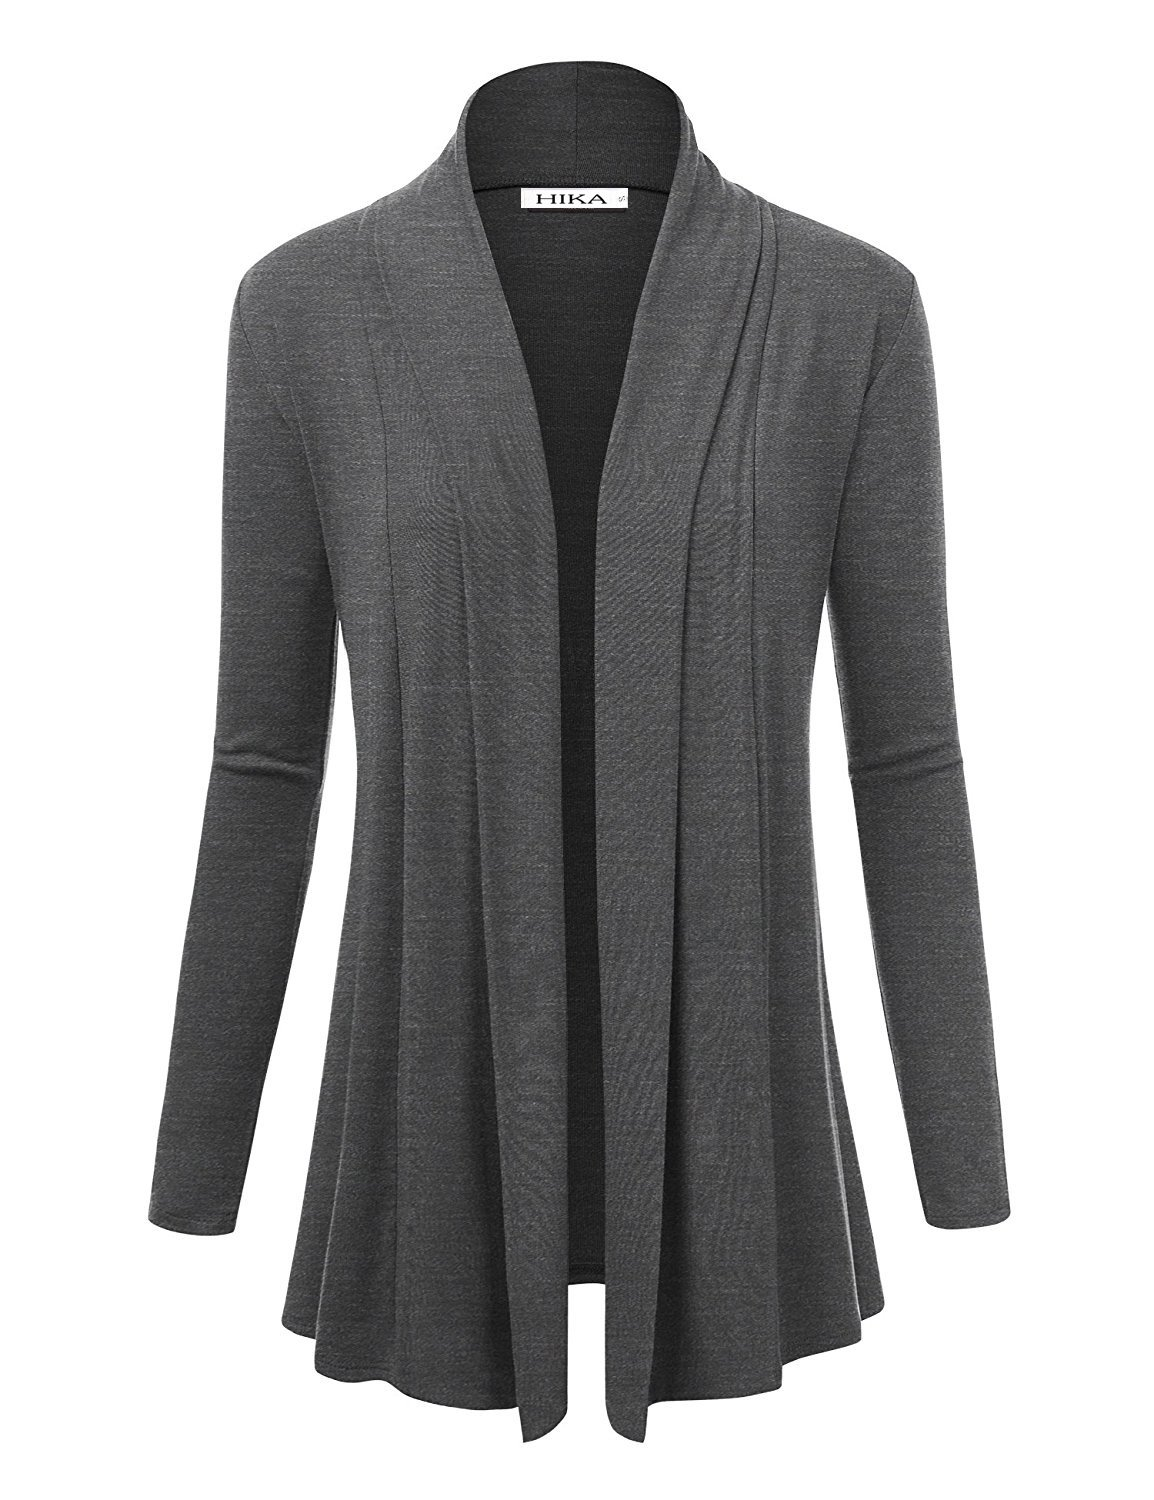 HIKA Women's Classic Long Sleeve Draped Open Front Cardigan (Medium, Heather Grey)